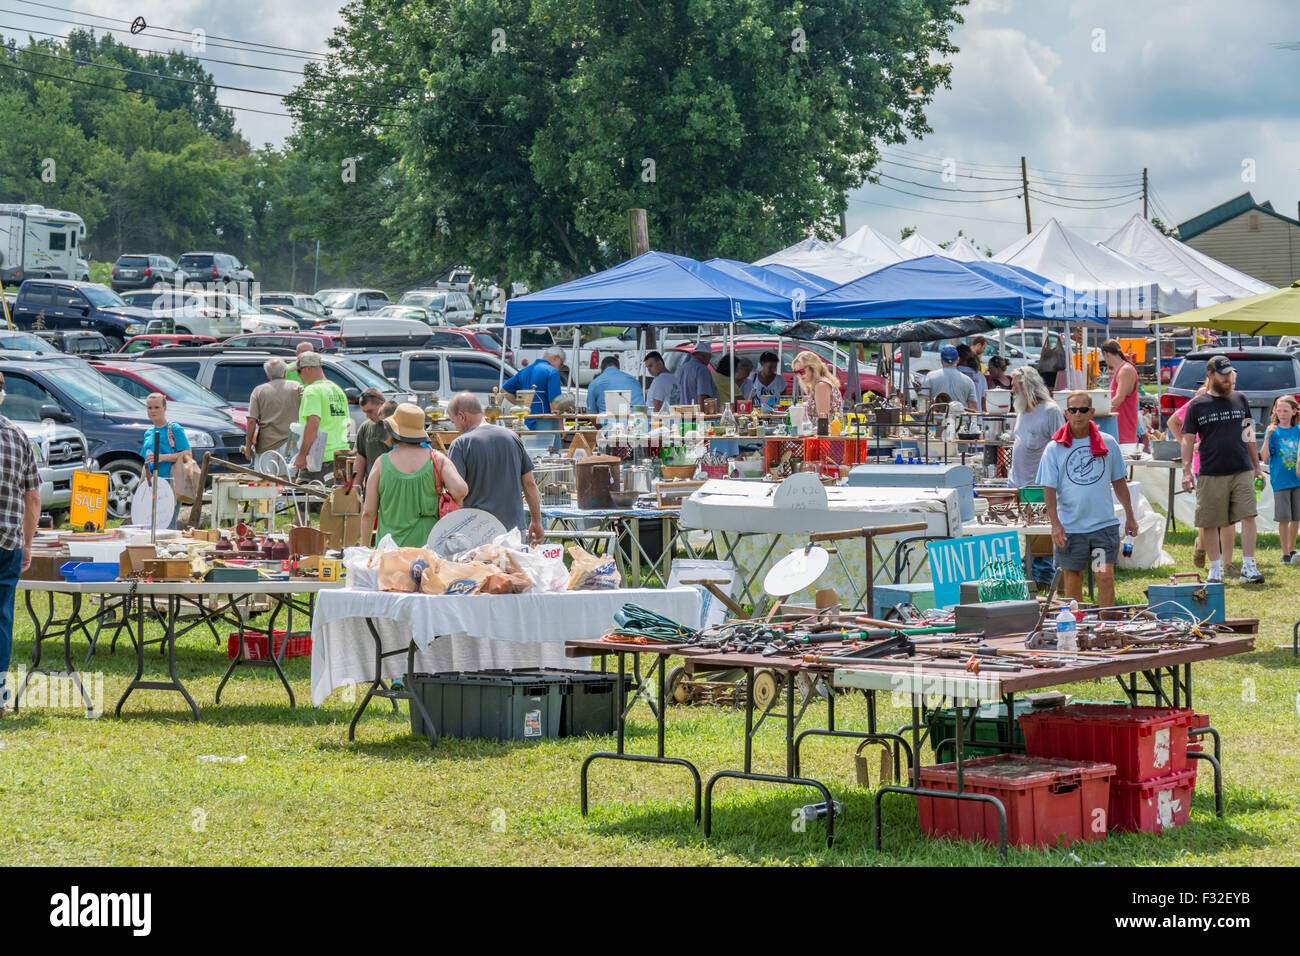 Yard Sale Stock Photos & Yard Sale Stock Images - Alamy